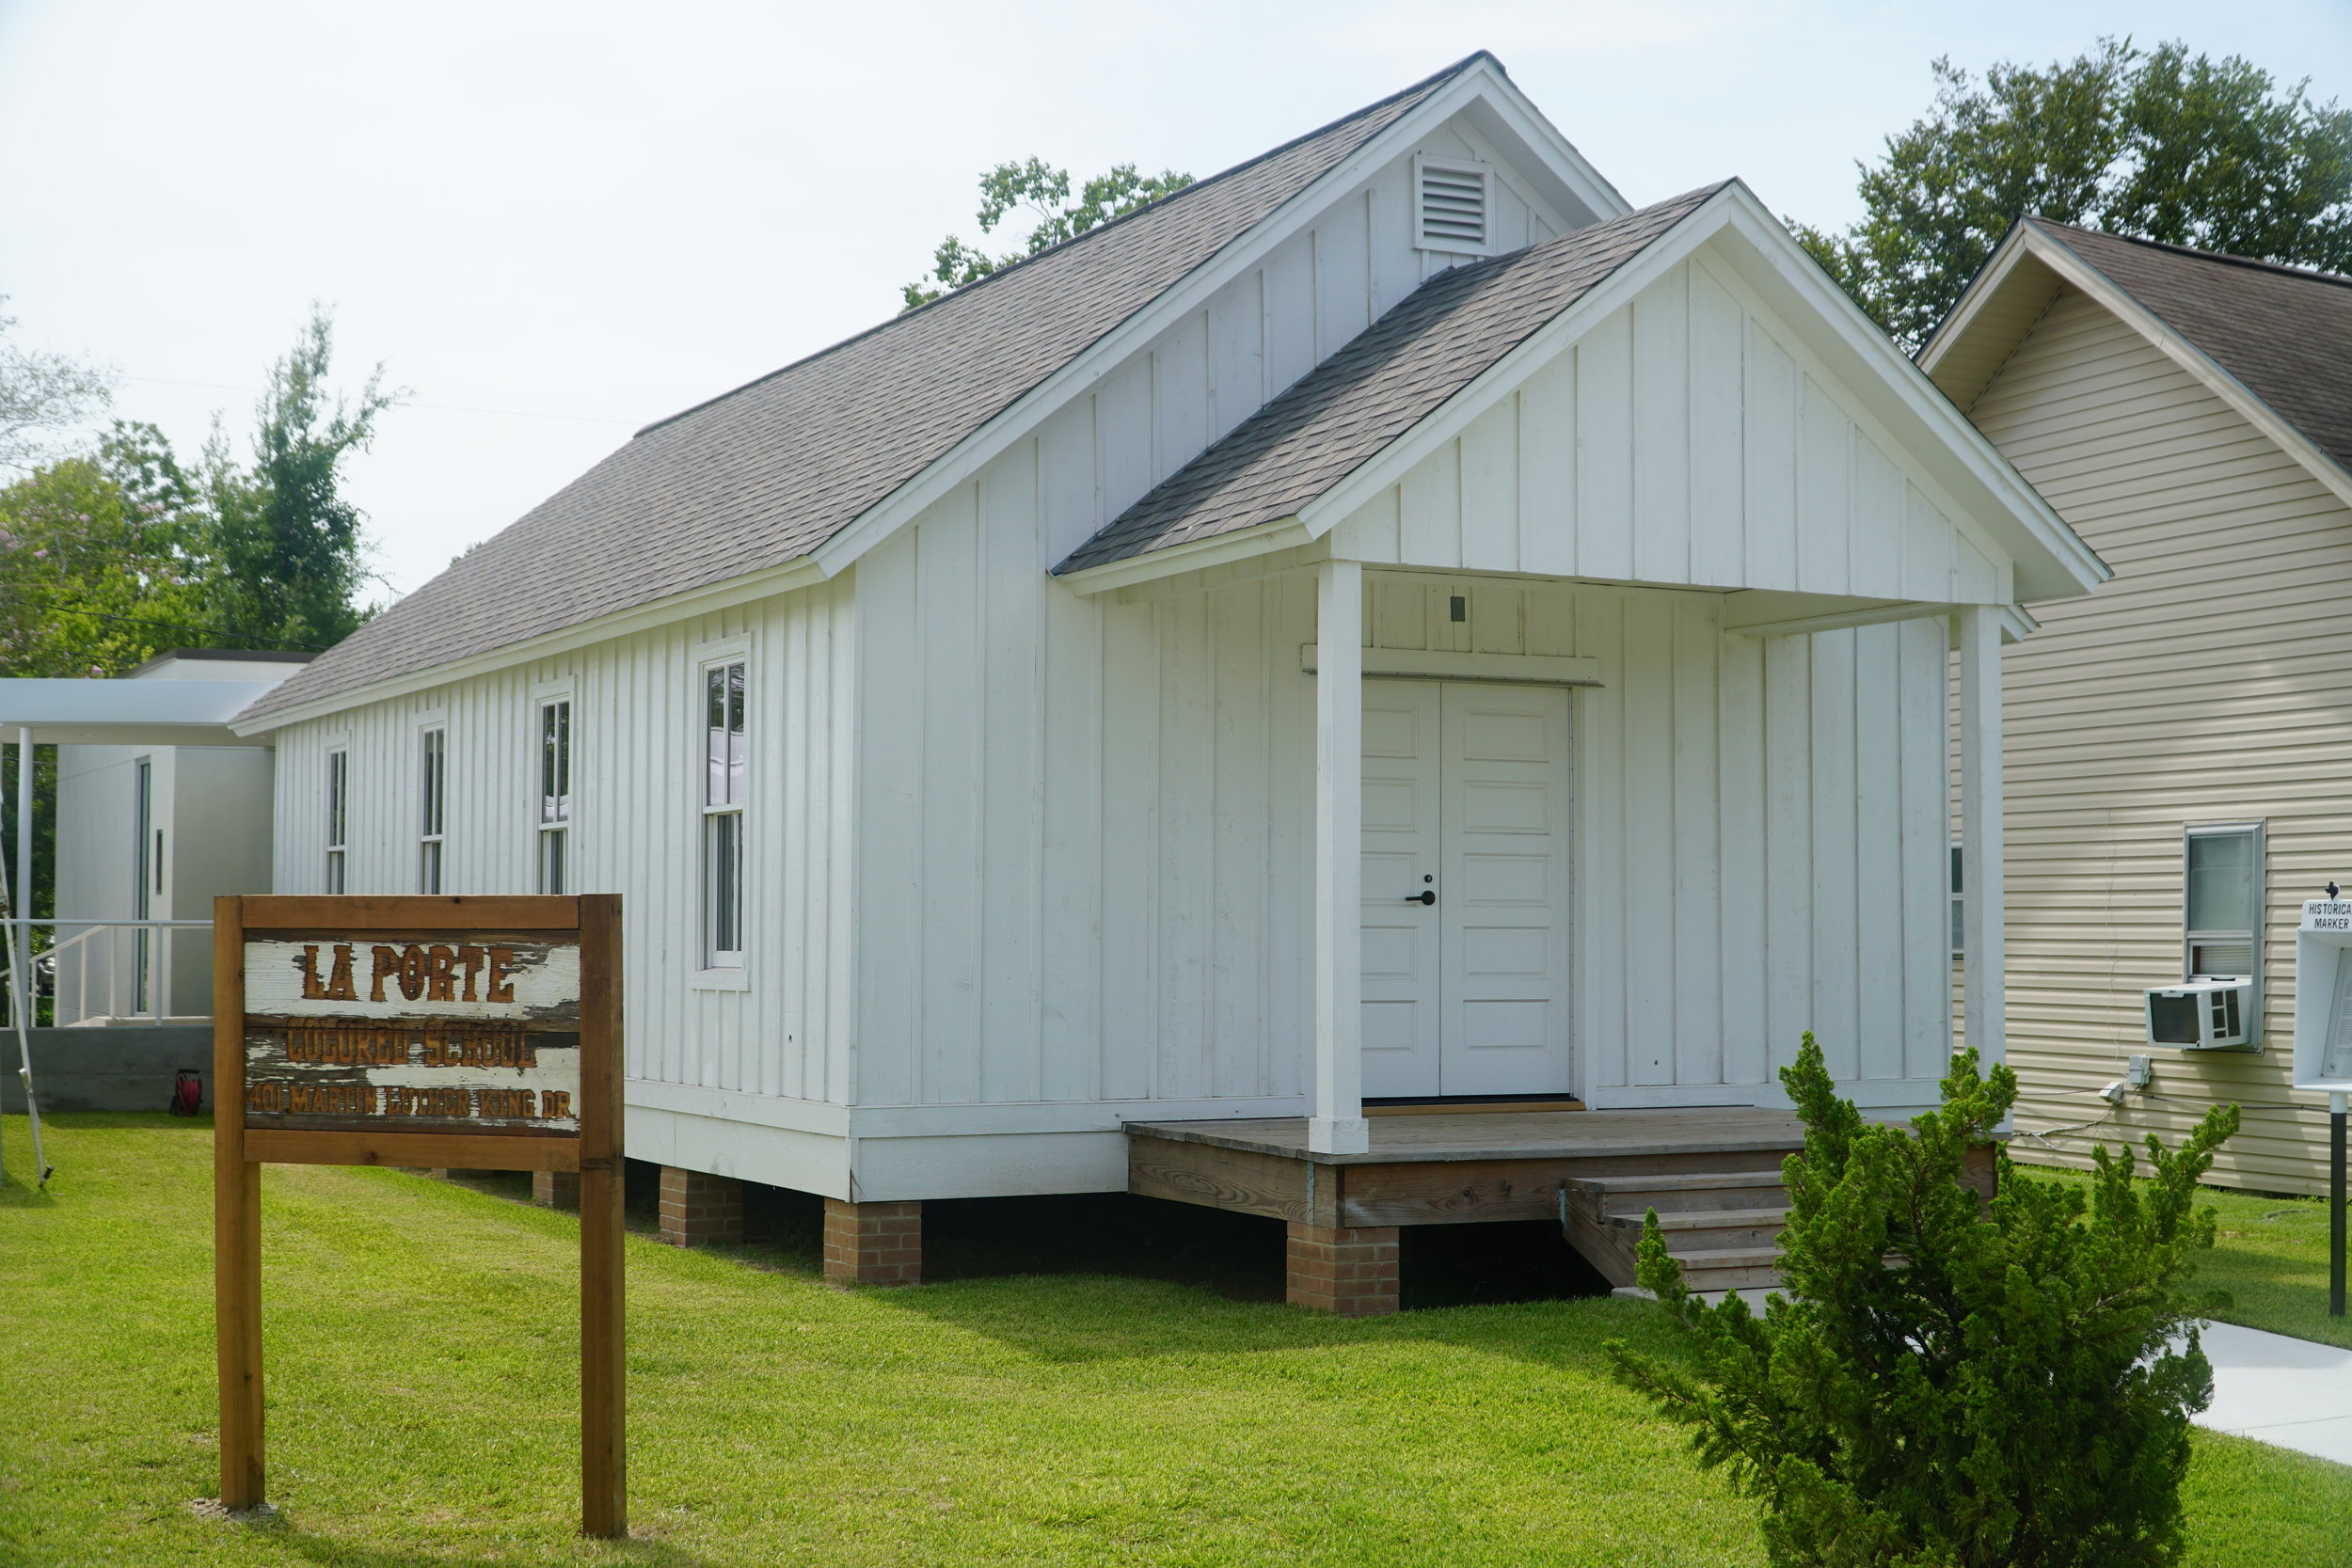 For many years after it ceased to be used for daily education, the historic one-room school house was still a centerpiece in the community. The small building hosted school performances, and acted as the meeting place for all north-side community celebrations. Overtime, the structure fell into disrepair suffering the crippling effects of time and neglect. Through the combined efforts of the La Porte Community Civic Club and the City of La Porte, the building has been completely rebuilt and once again took center stage in the community as it was dedicated on Saturday, July 21, 2018 as a museum and historical site. The building, which is located at 401 North 5th St (Dr. Martin Luther King Jr. Dr.) La Porte, TX 77571, is open Saturdays and Sundays from 11a-4p and admission is free.